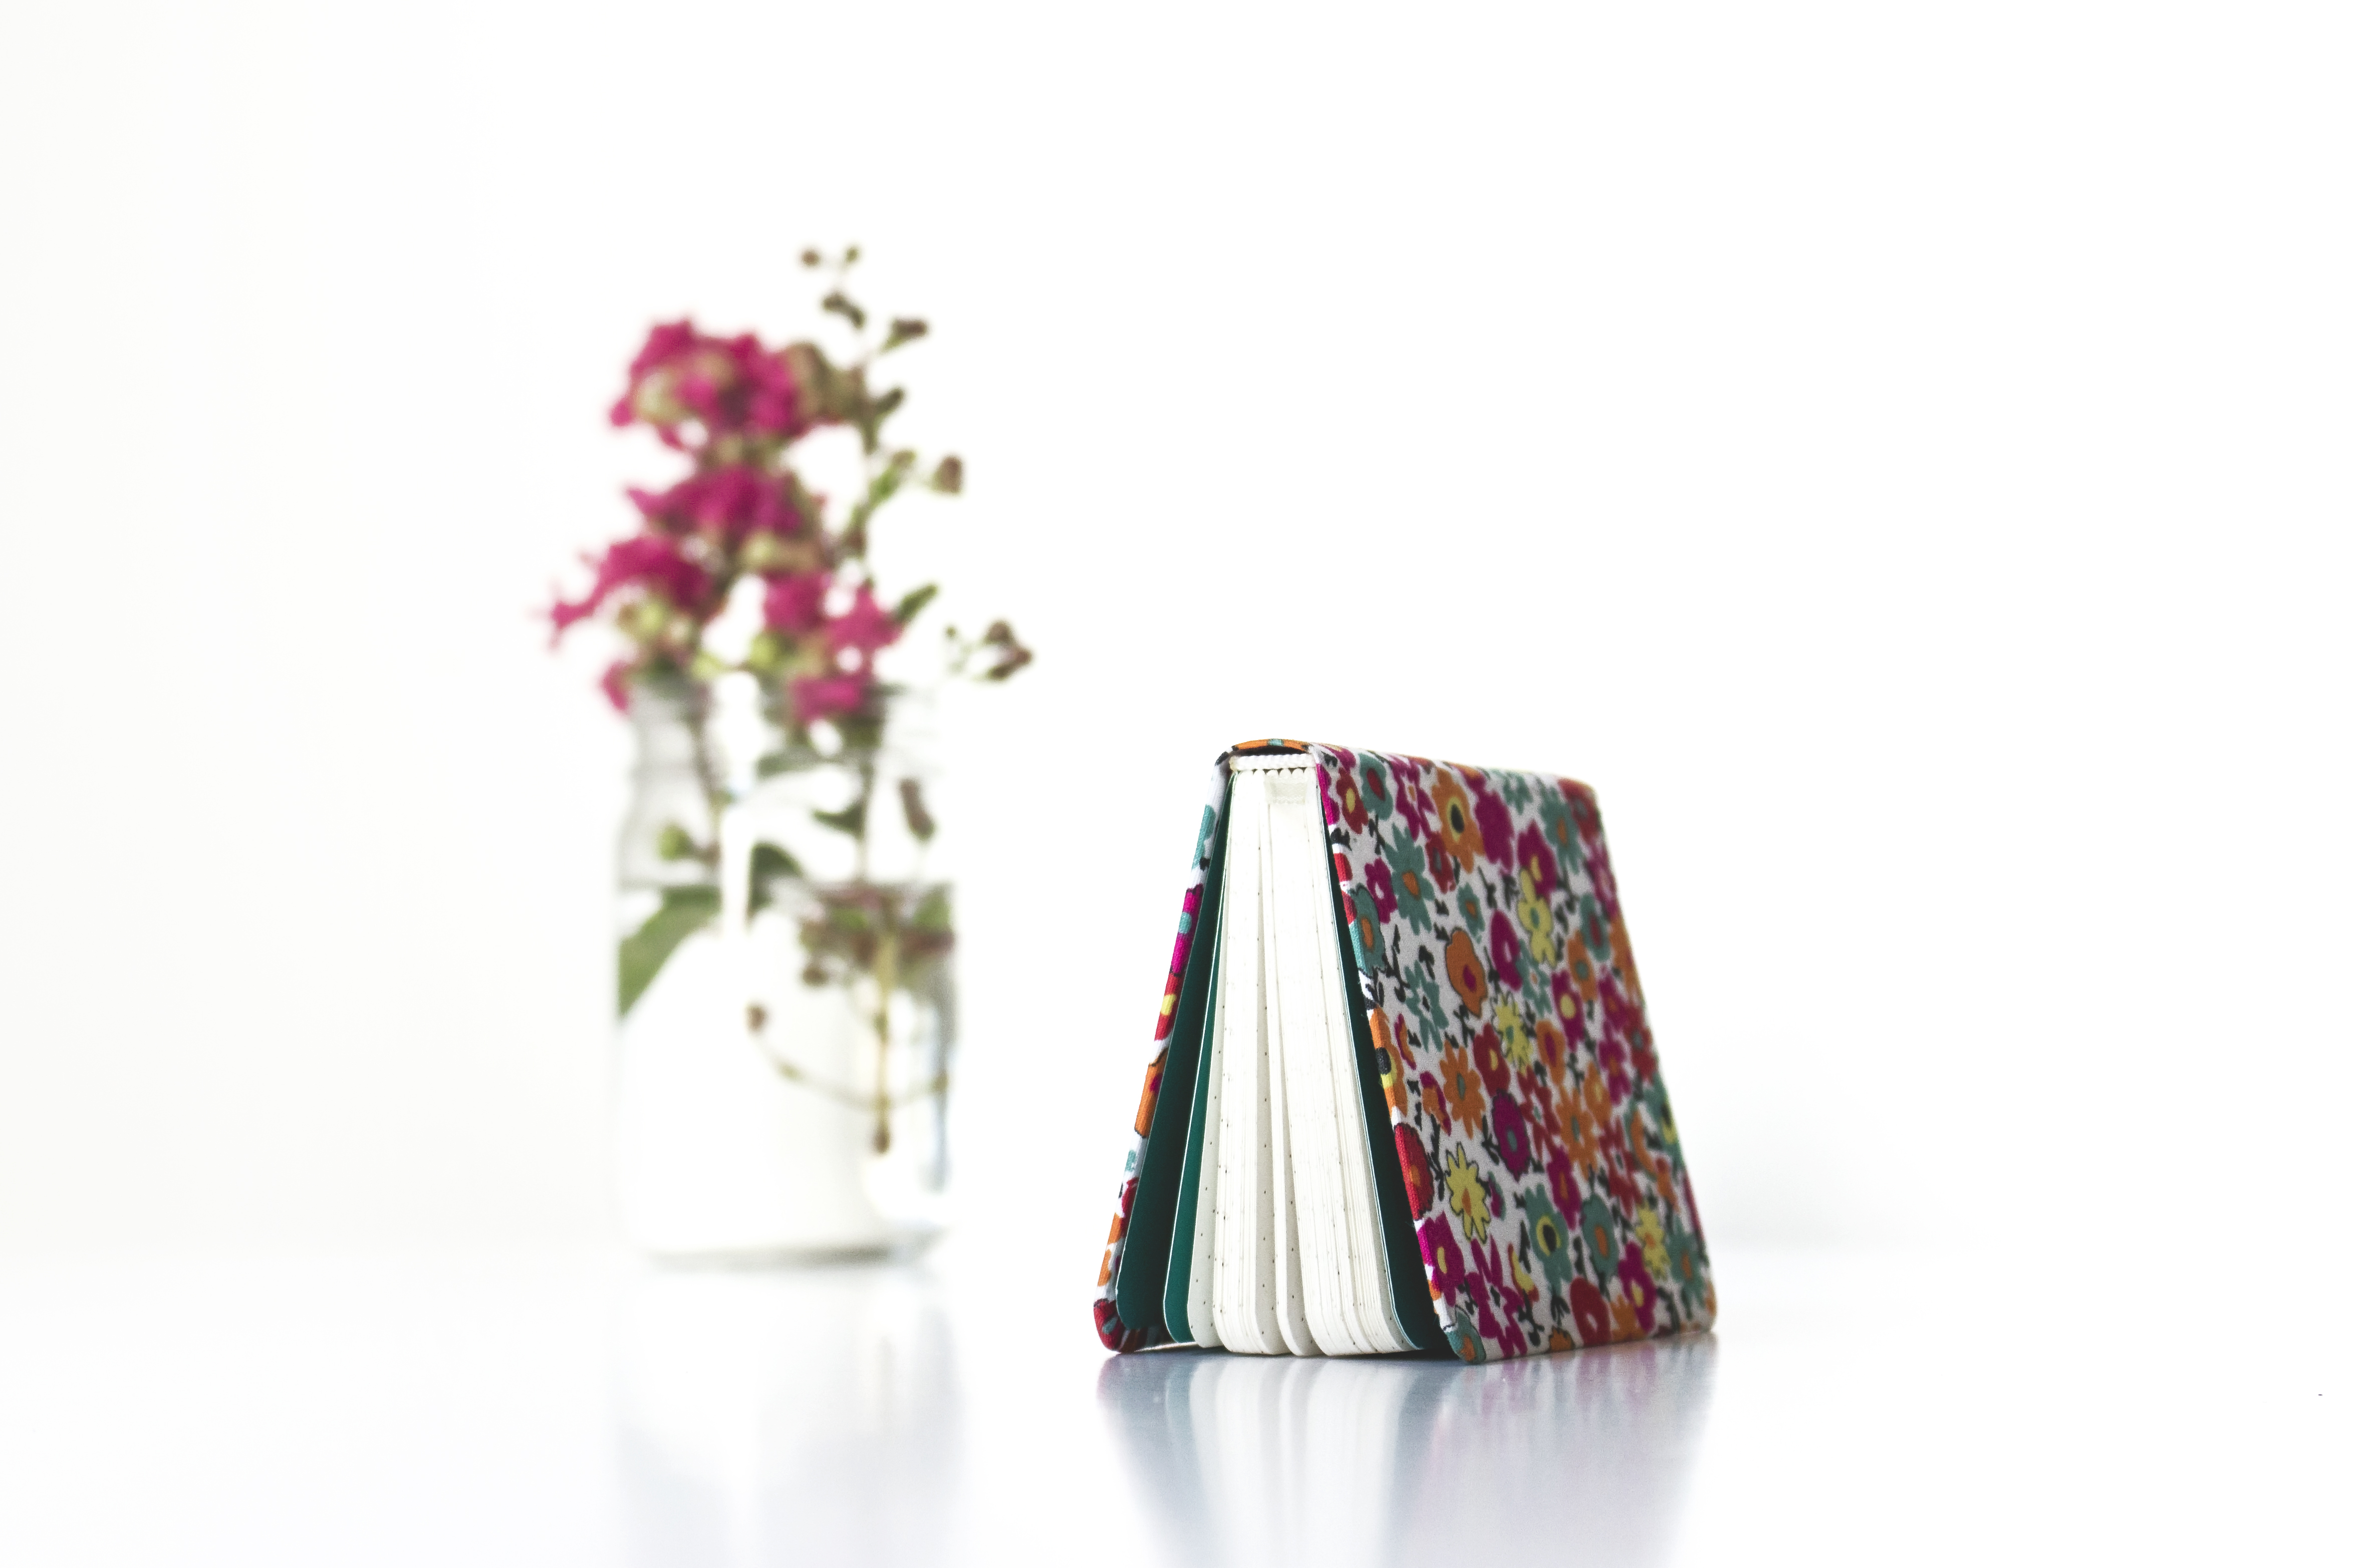 5 Amazing Journals For Your Goals - Searching For Better